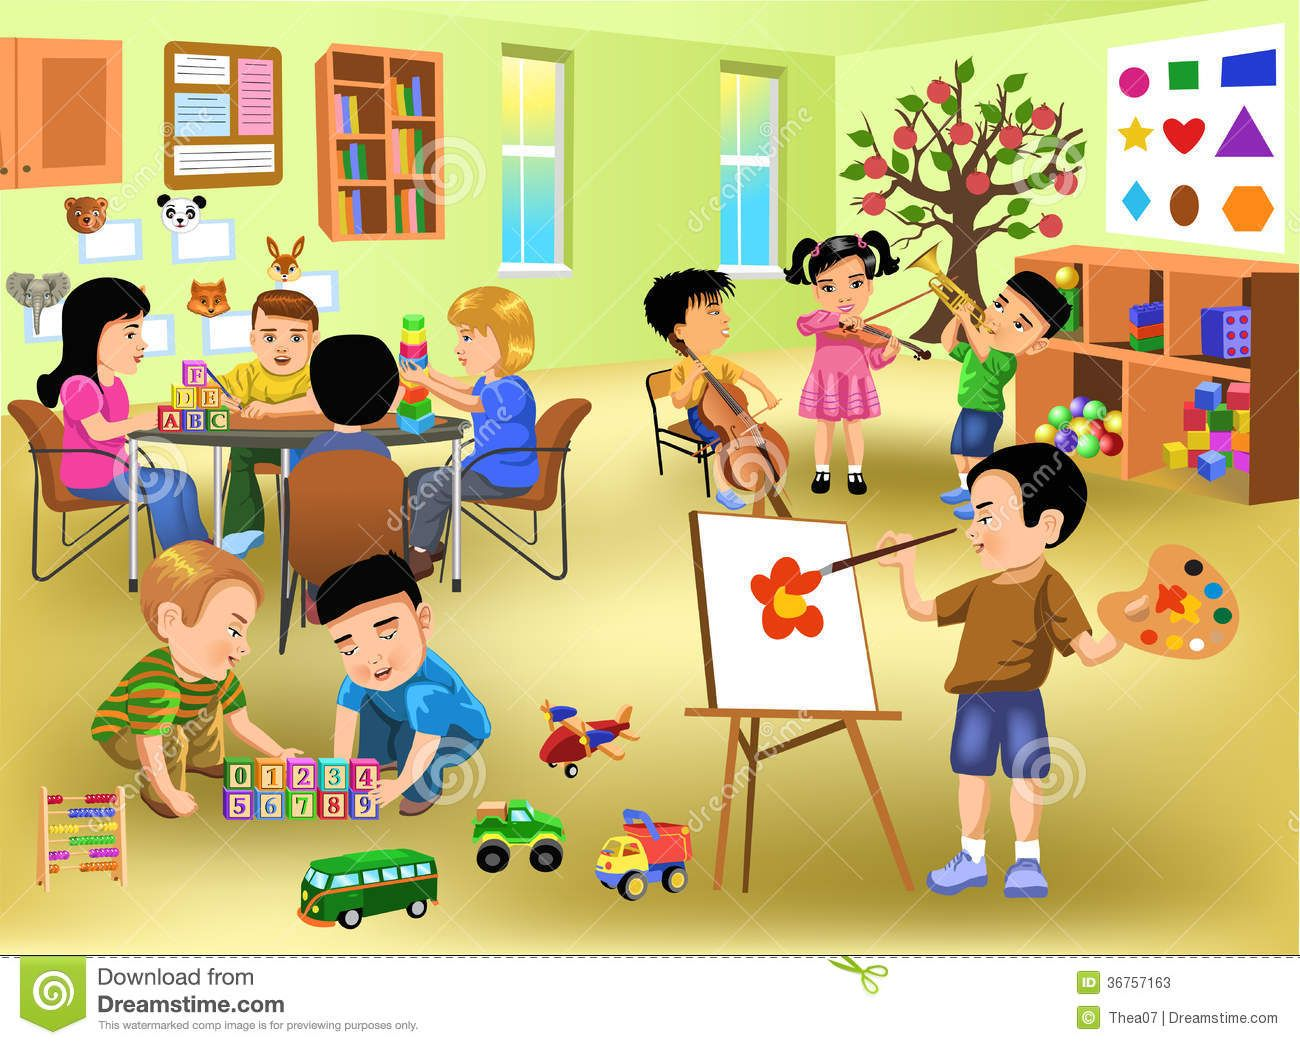 Children in the classroom clipart picture black and white download ValleyOfKids is the best place for kids to learn and make a strong ... picture black and white download